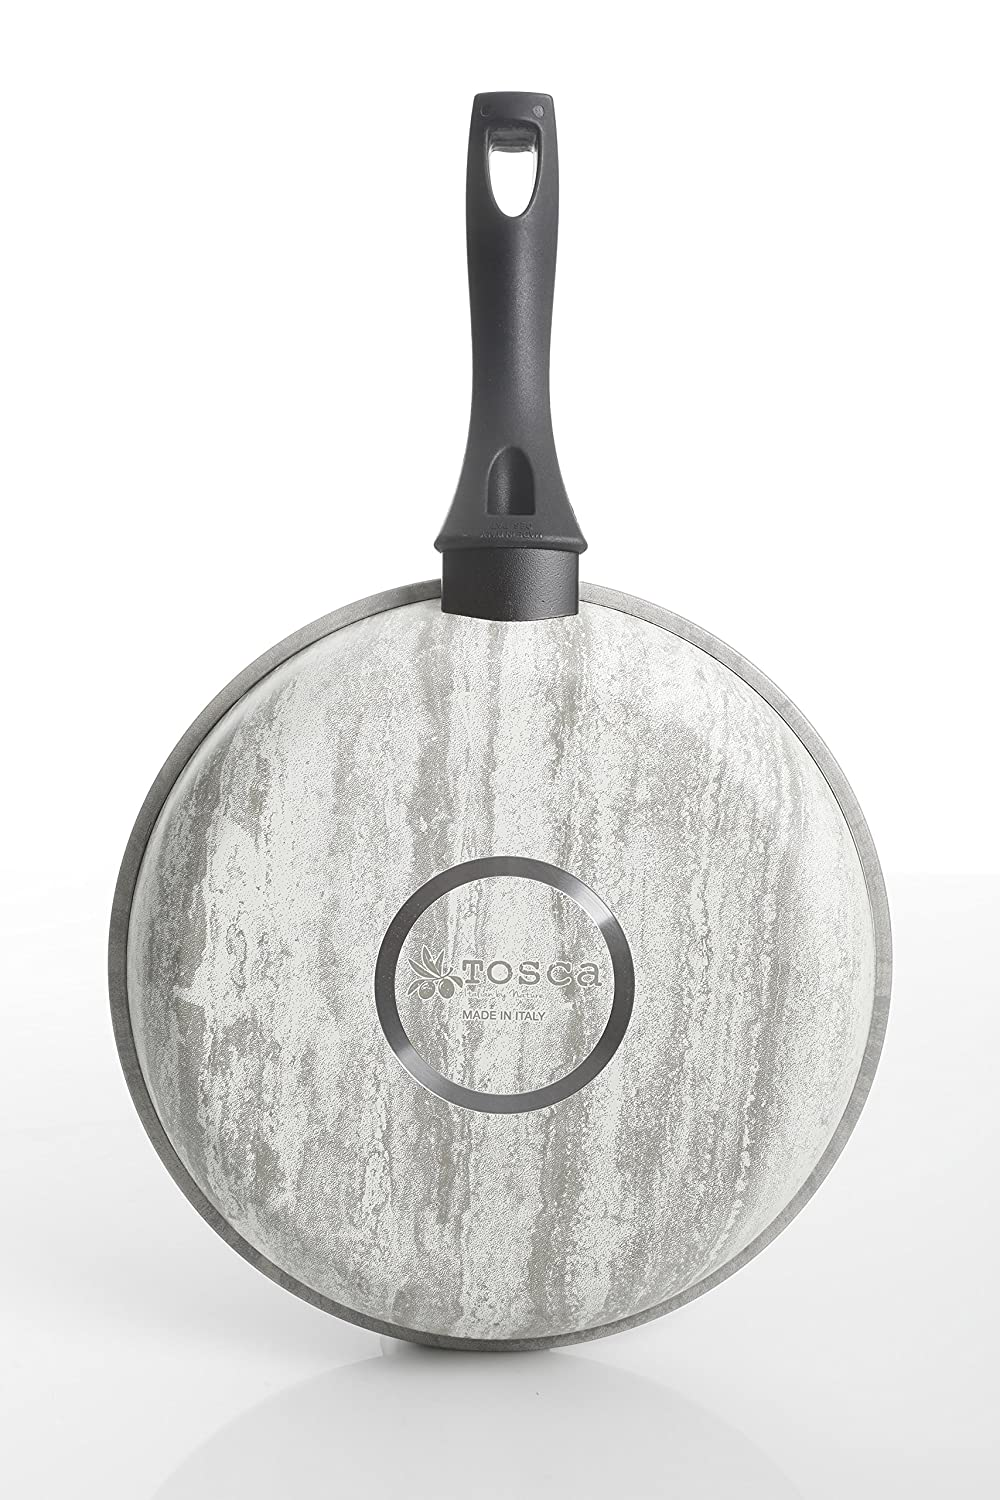 Amazon.com: Tosca 80583.01 Carrucci Luna 11 Inch Frying Pan, Marbeled Grey: Kitchen & Dining